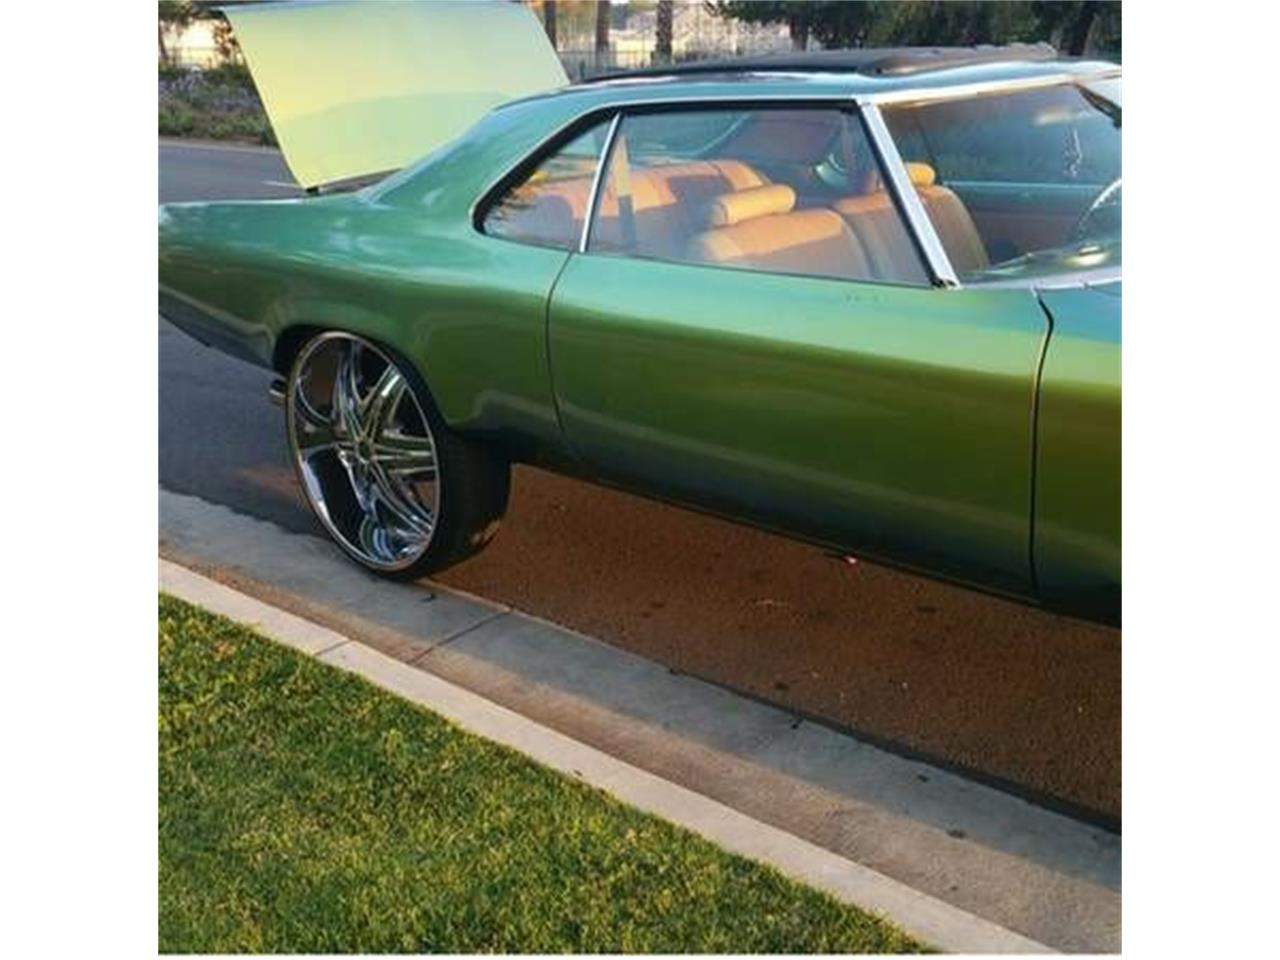 Large Picture of 1972 Oldsmobile Delta 88 - $16,995.00 Offered by Classic Car Deals - L2JP